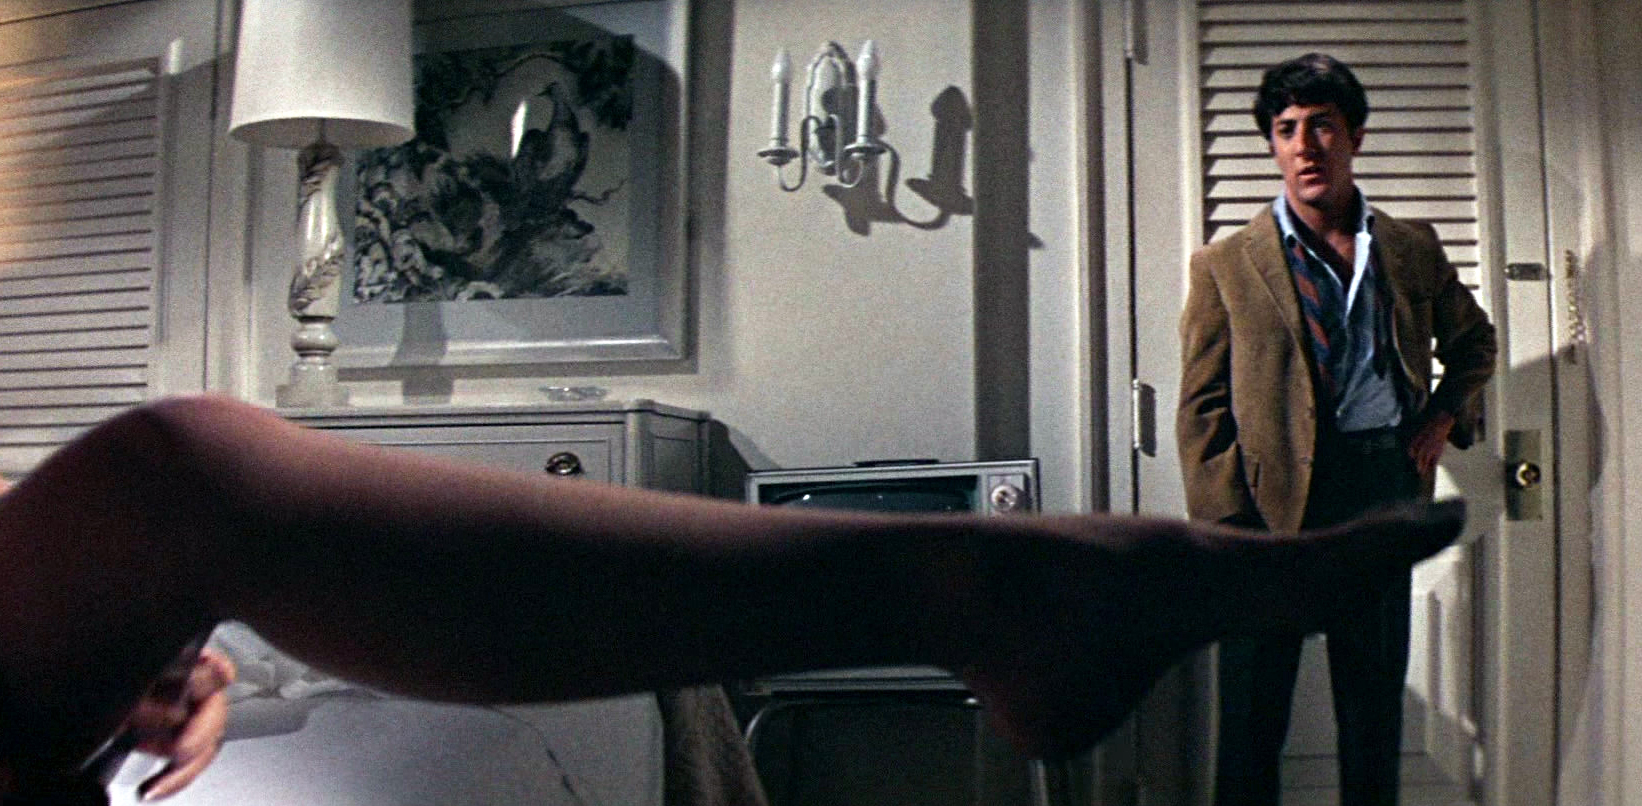 So here's to you, Mrs. Robinson.